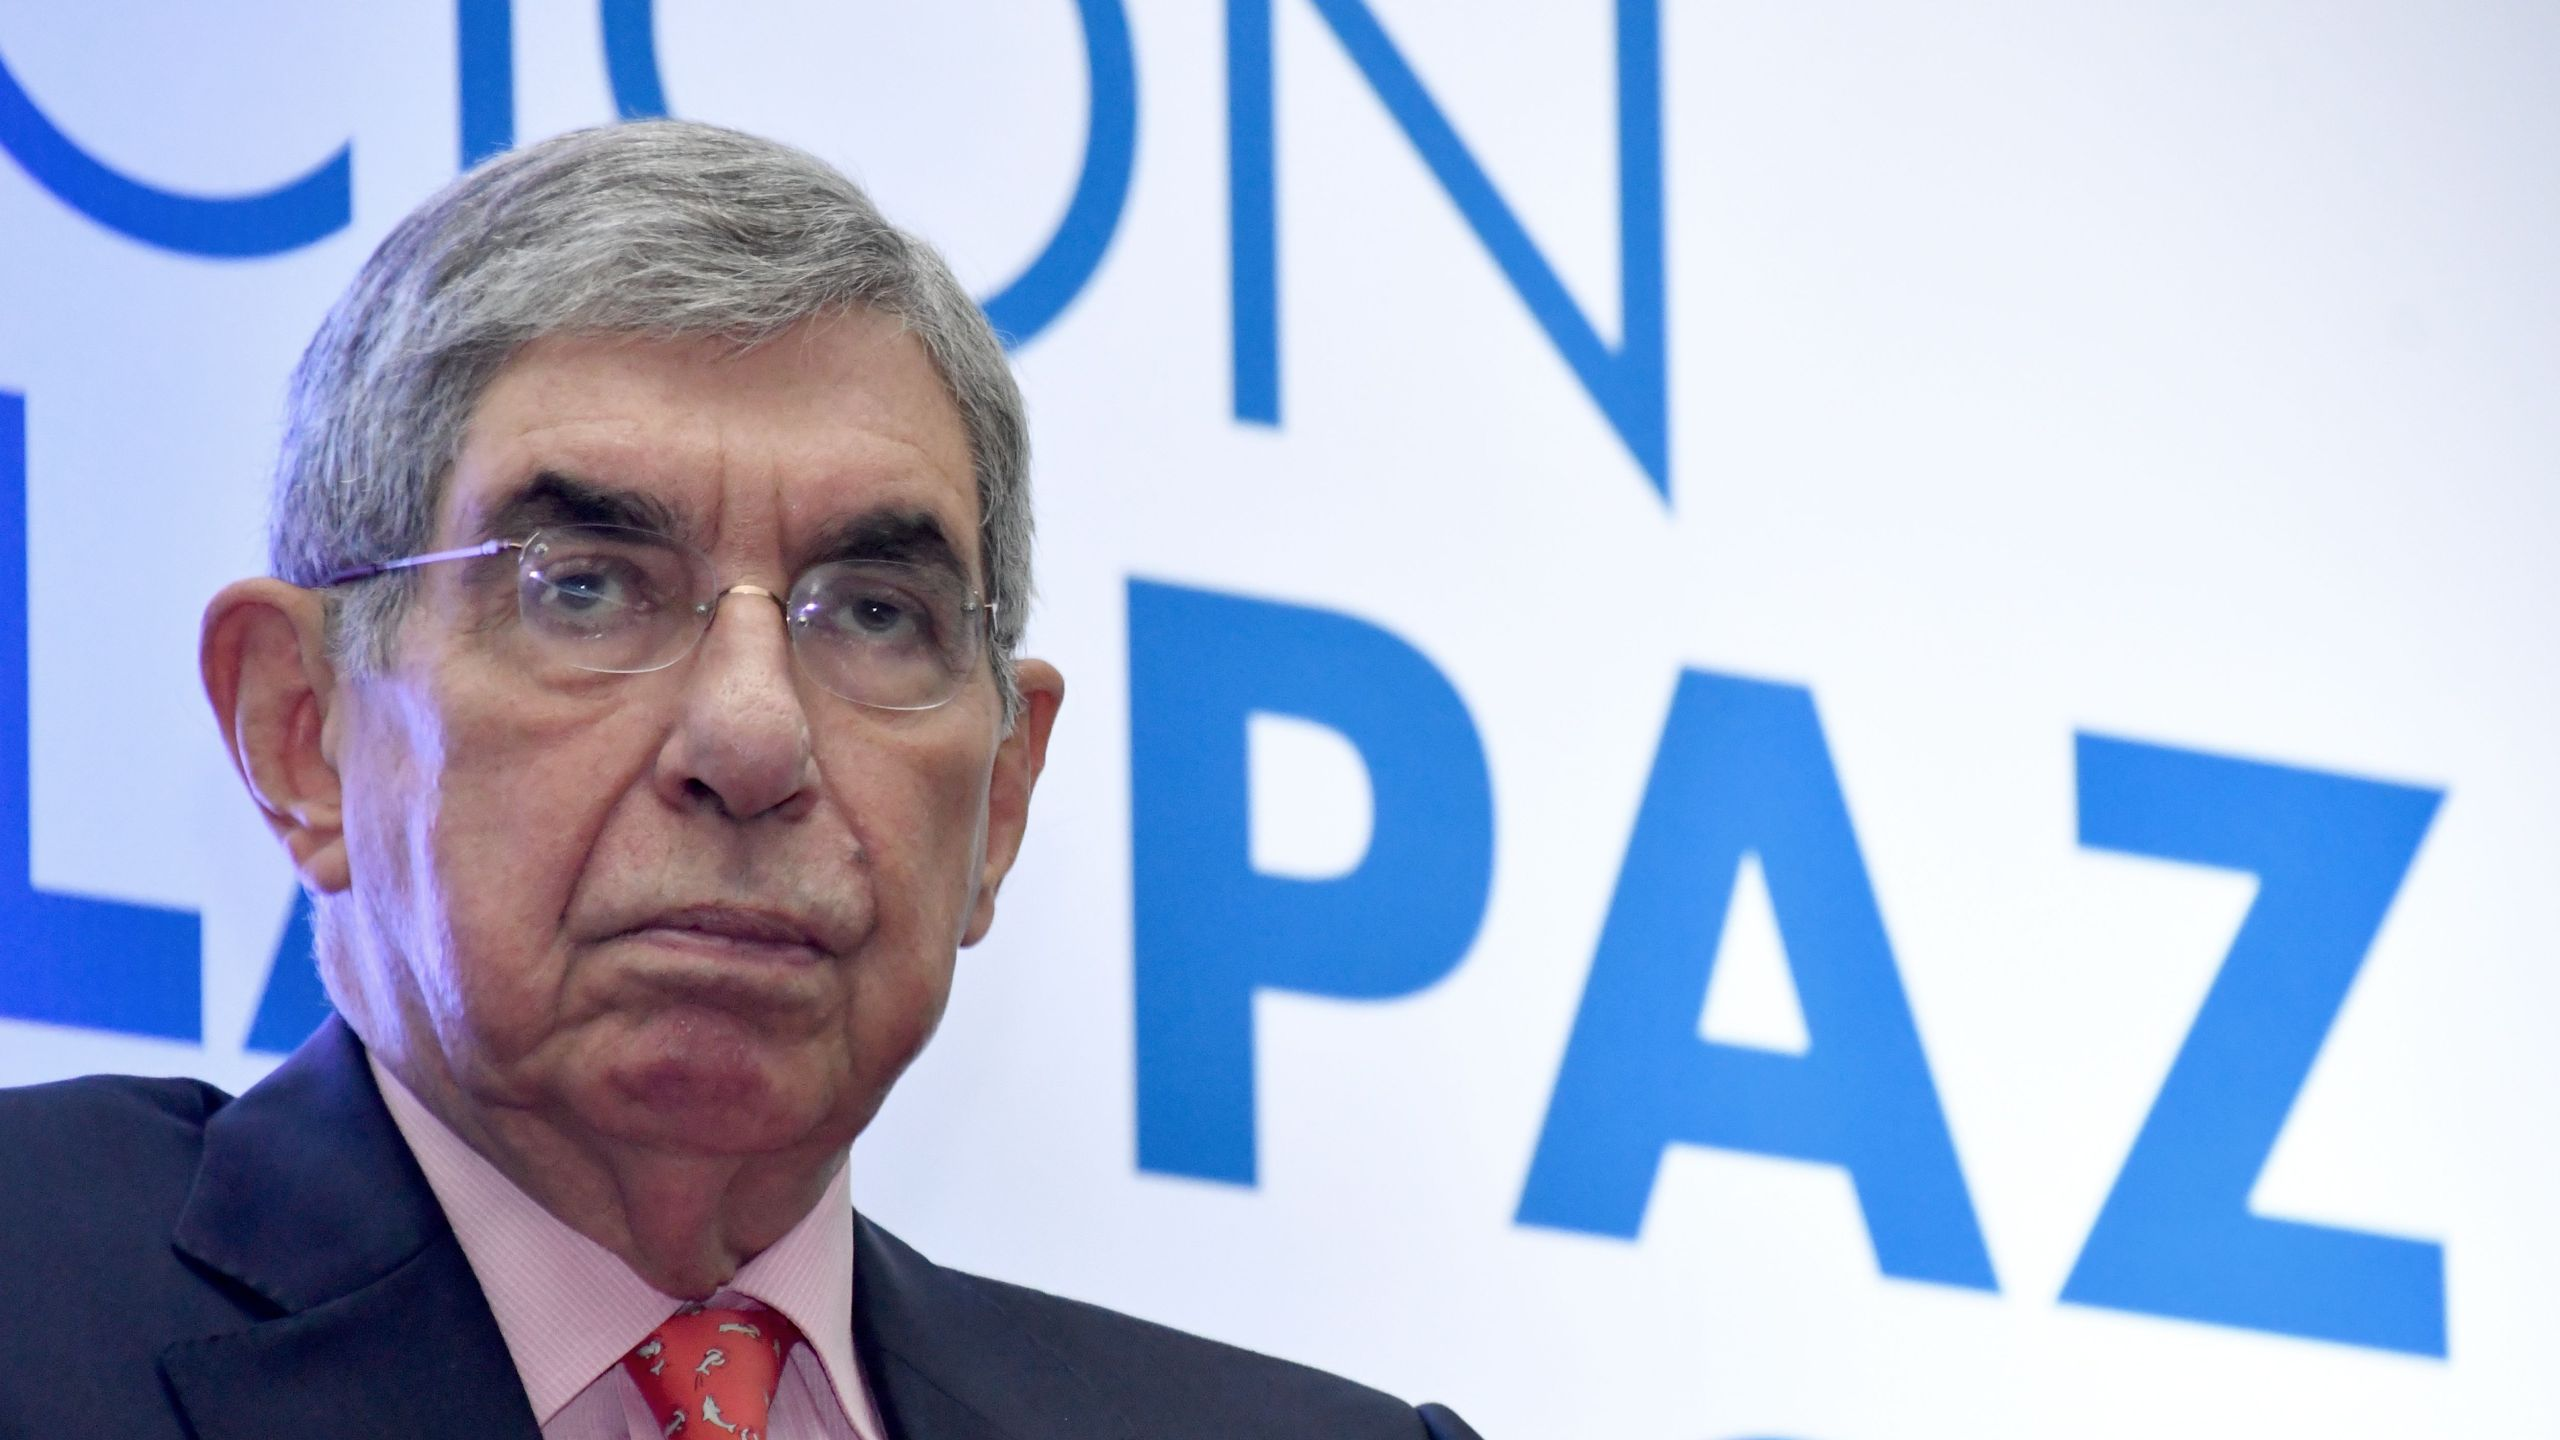 Former Costa Rican president and Nobel Peace Prize-winner Oscar Arias Sanchez, attends the closing ceremony of the Commemoration for the 30 years of the Central American Peace Accord in San Jose, Costa Rica on Aug. 11, 2017. (Credit: EZEQUIEL BECERRA/AFP/Getty Images)